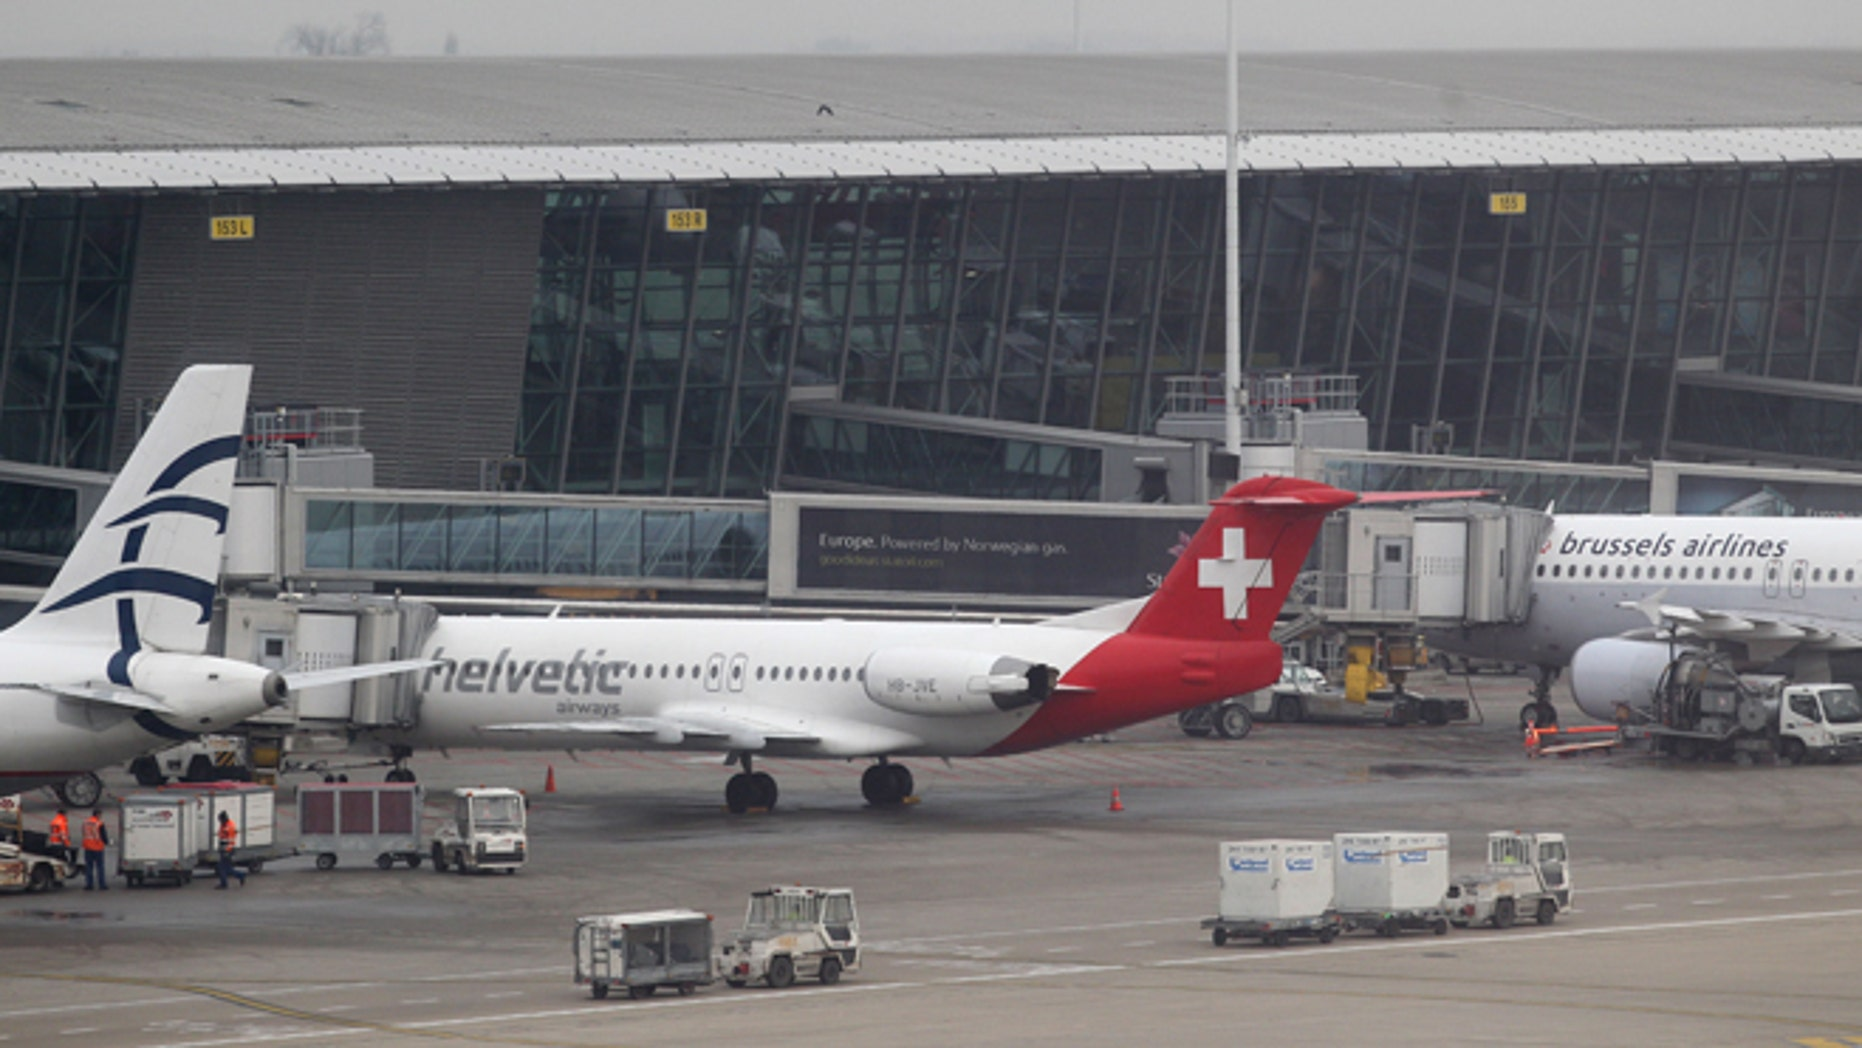 Feb. 19: Baggage carts make their way past a Helvetic Airways aircraft from which millions' of dollars worth of diamonds were stolen on the tarmac of Brussels international airport.